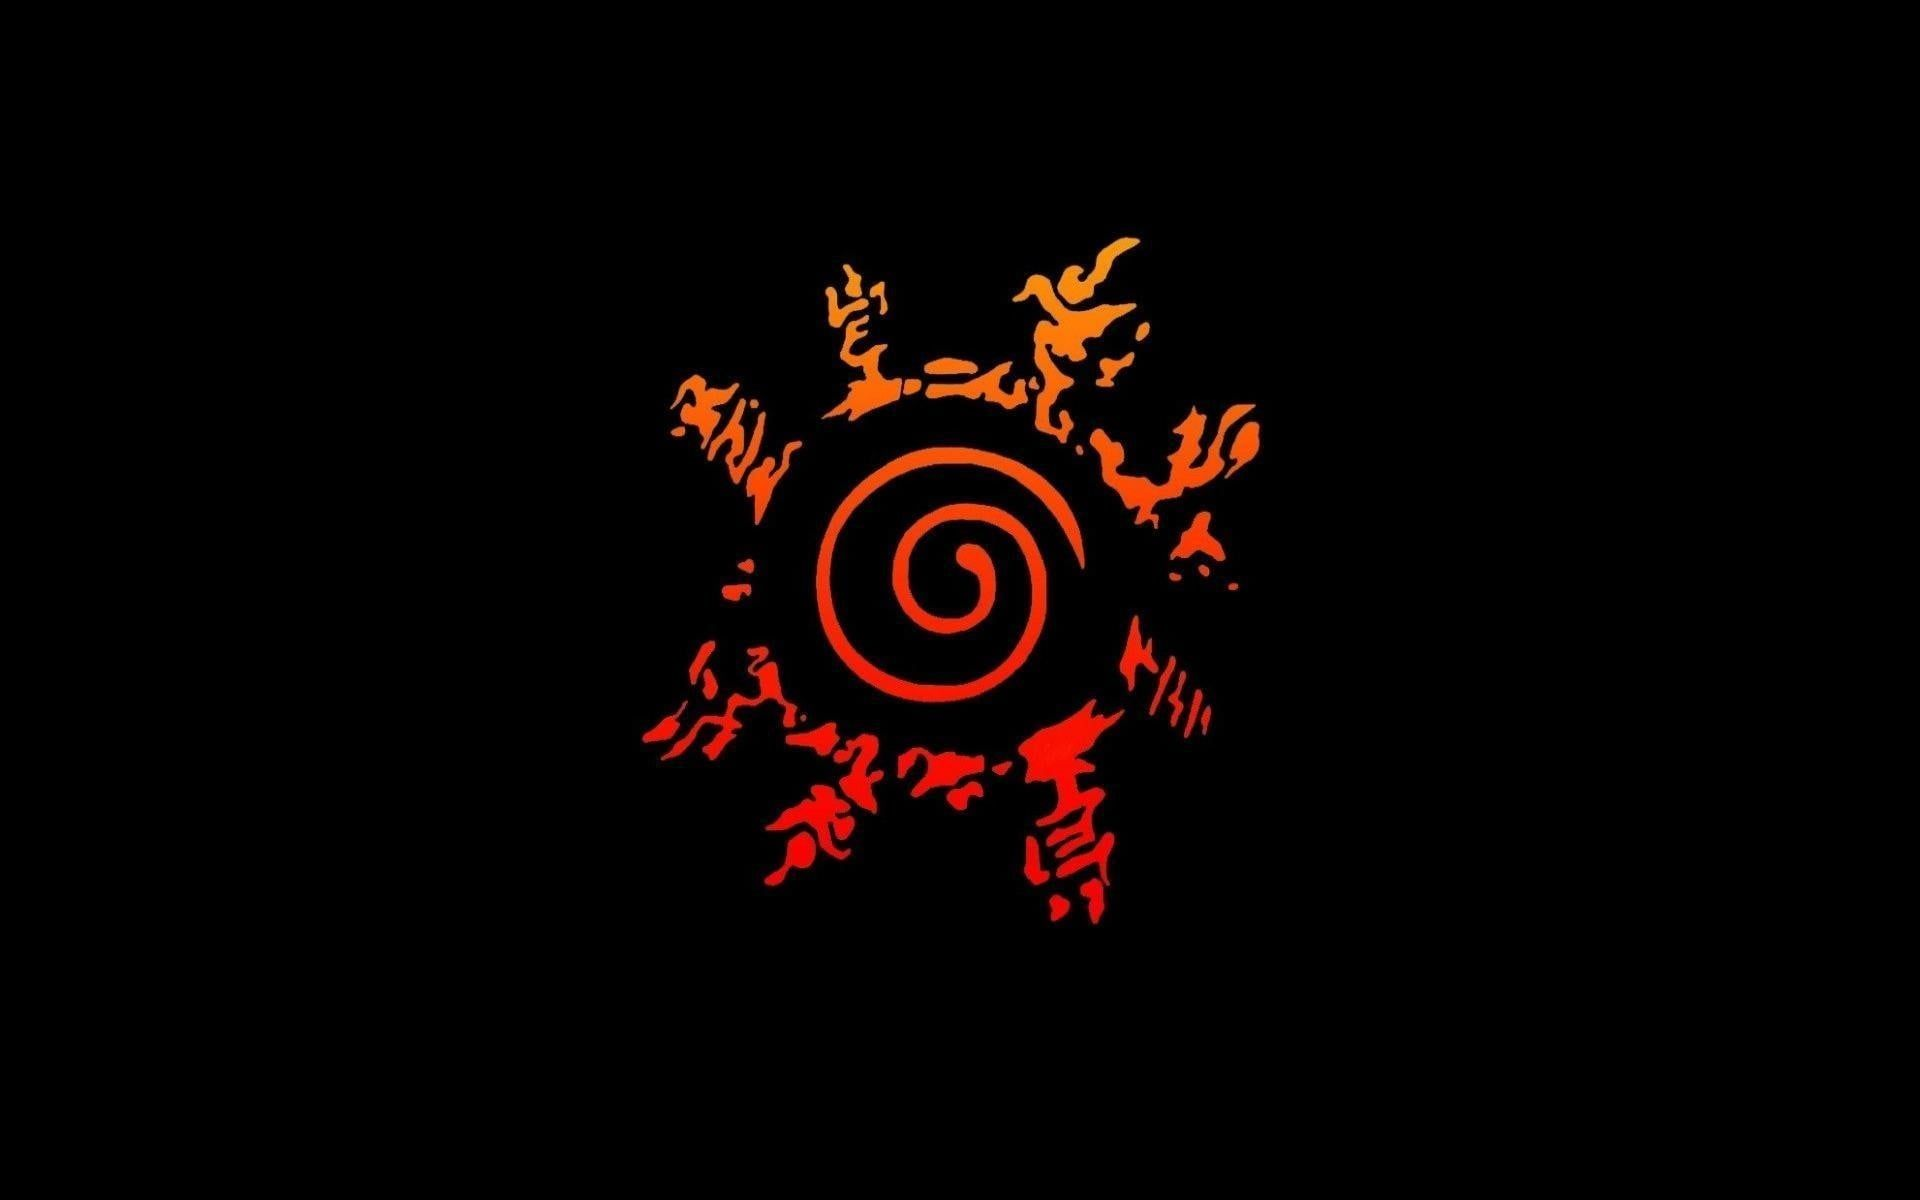 Red And Orange Naruto Seal Digital Wallpaper Naruto Shippuuden Anime Symbols Orange 1080p Wallpaper Hdwallpaper D Naruto Wallpaper Naruto Naruto Uzumaki